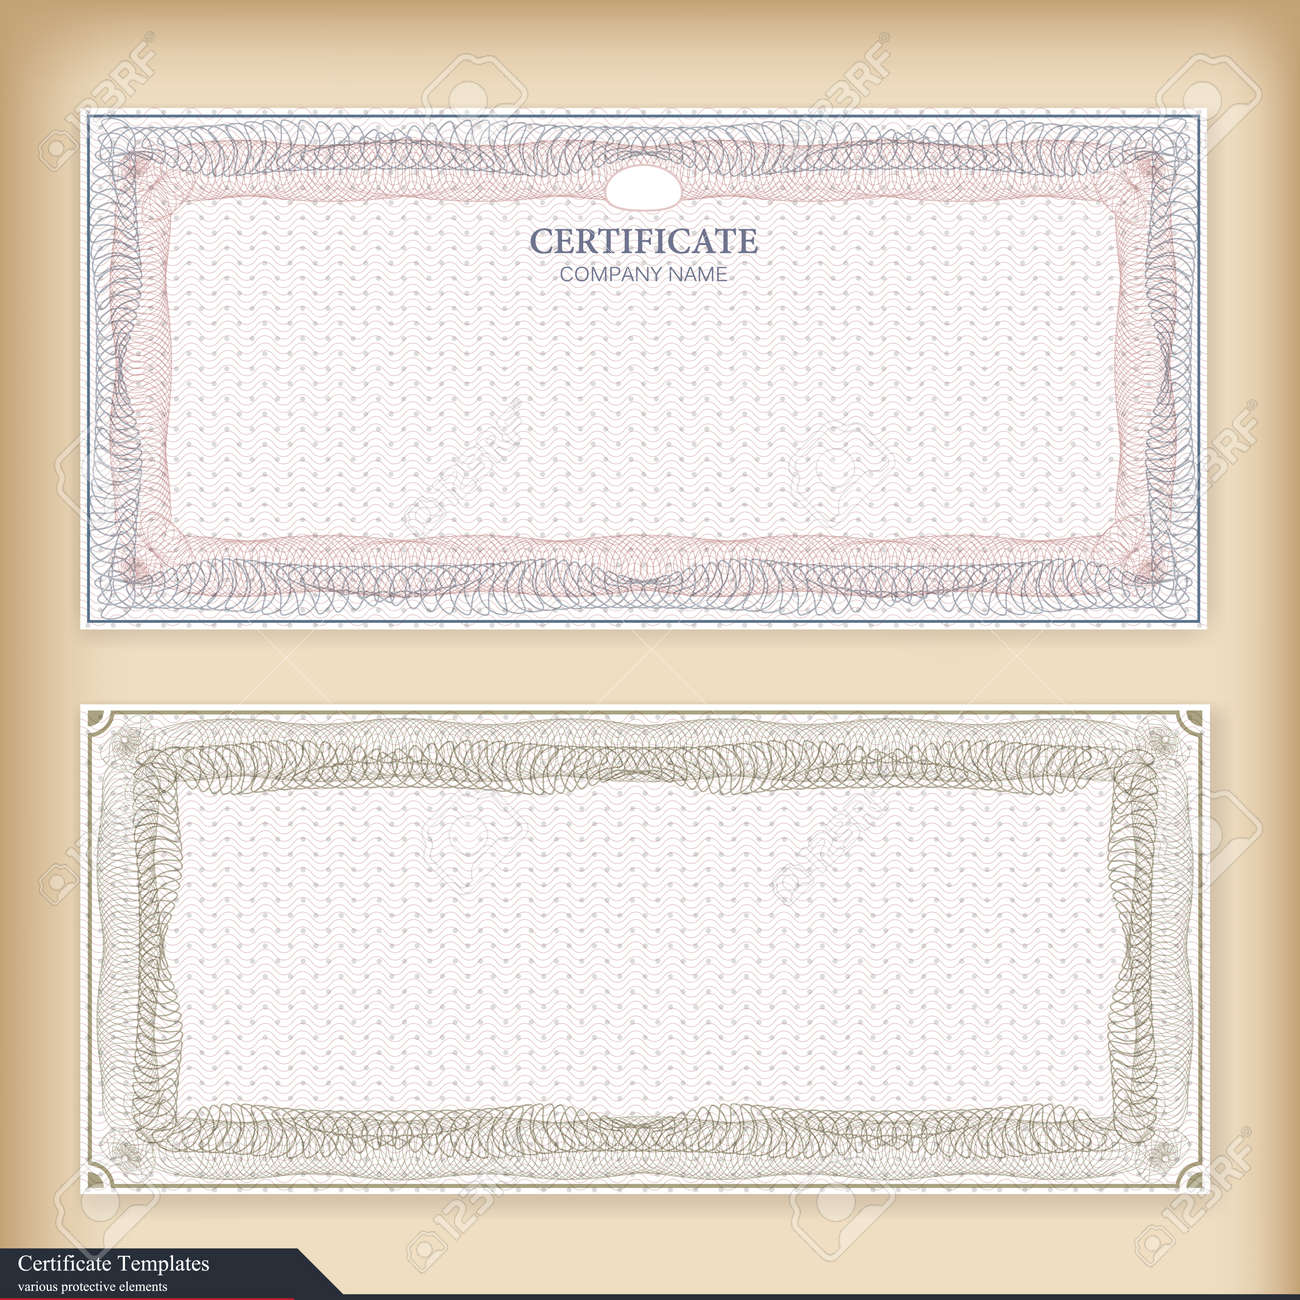 Vintage Certificate Template With Watermark Ornate Gift Certificate